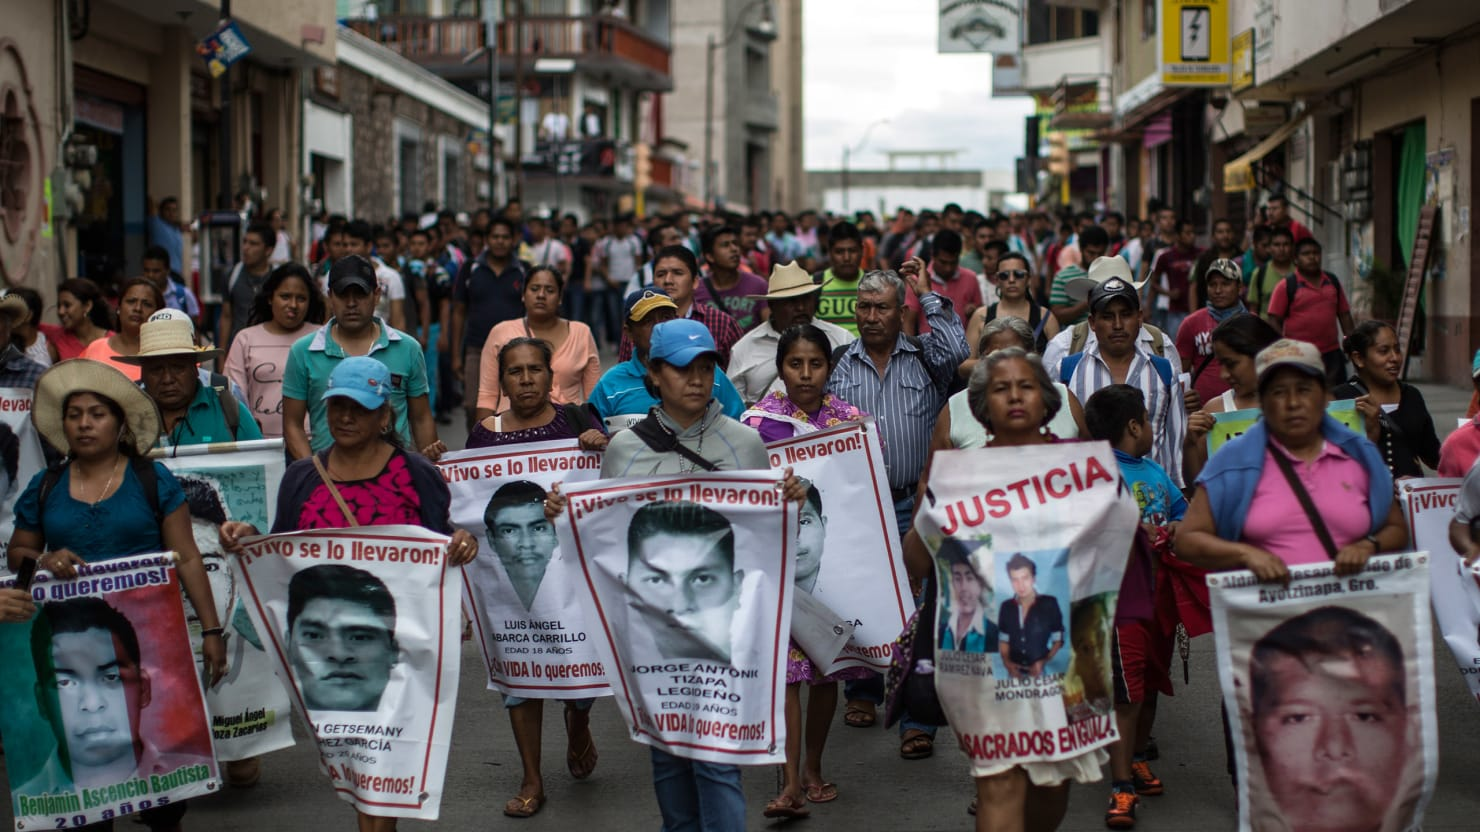 The Disappeared 43: Report Exposes Mexico's Student Murder Coverup